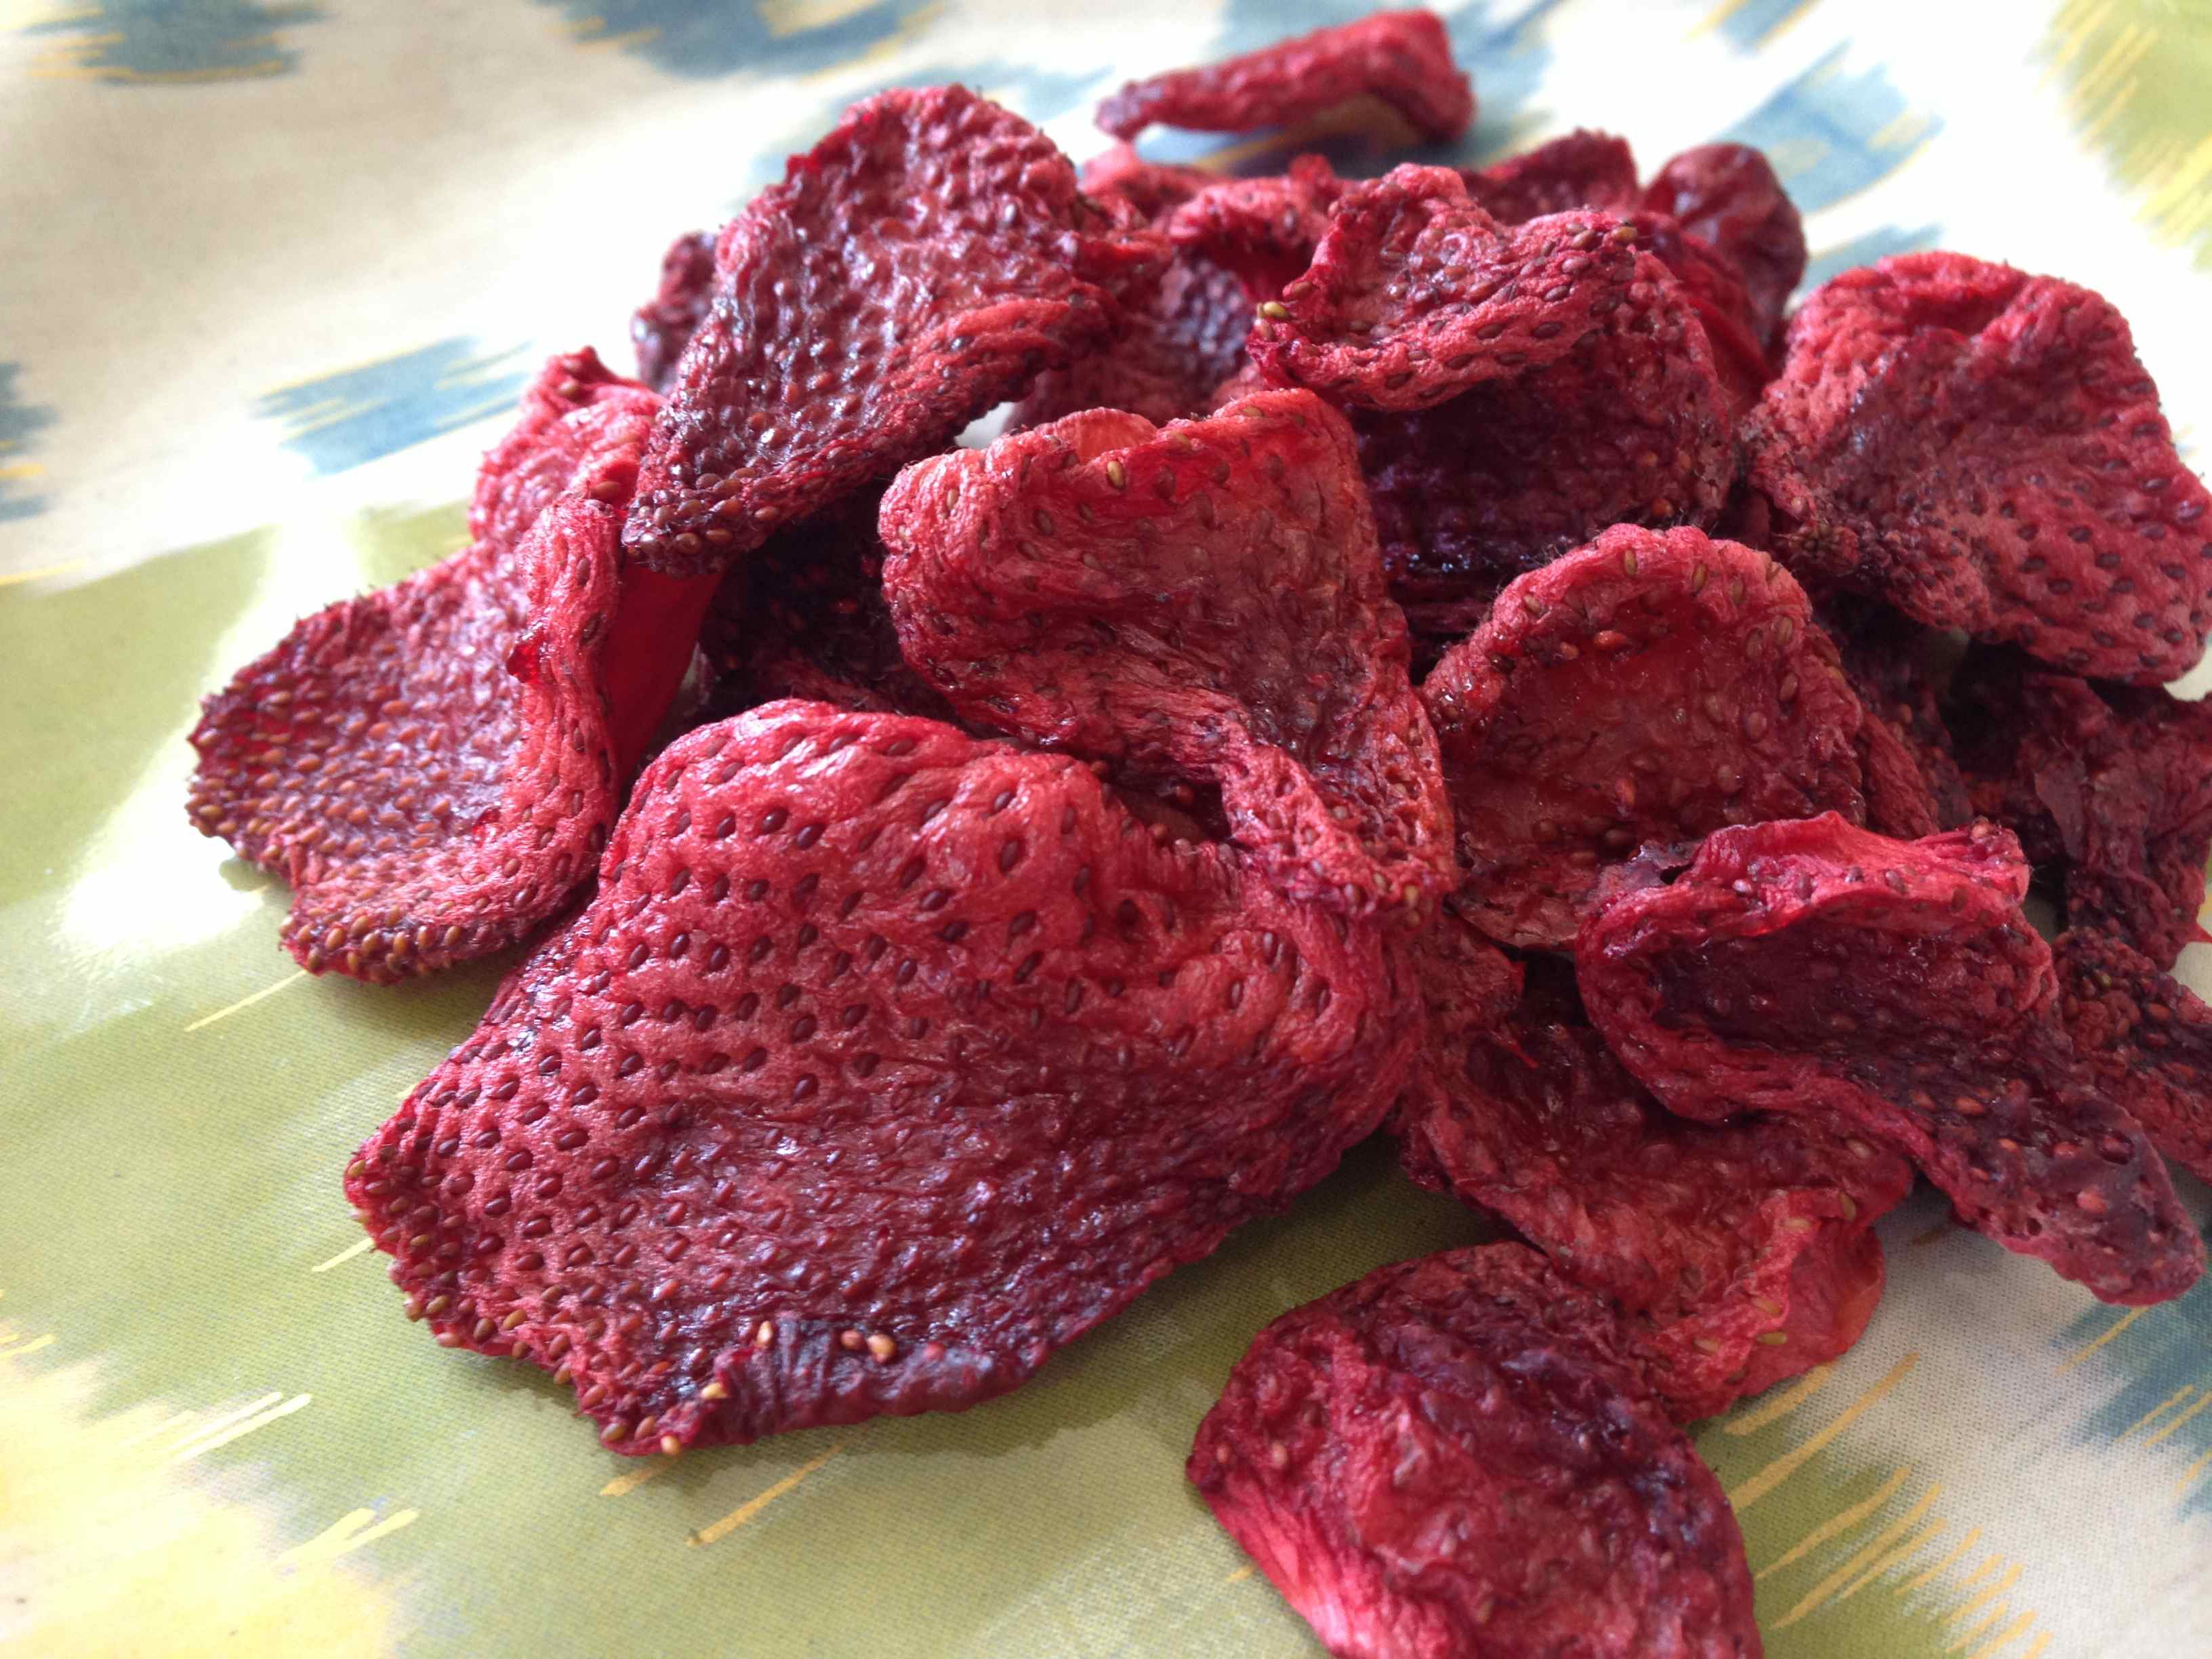 Dried fruit strawberries